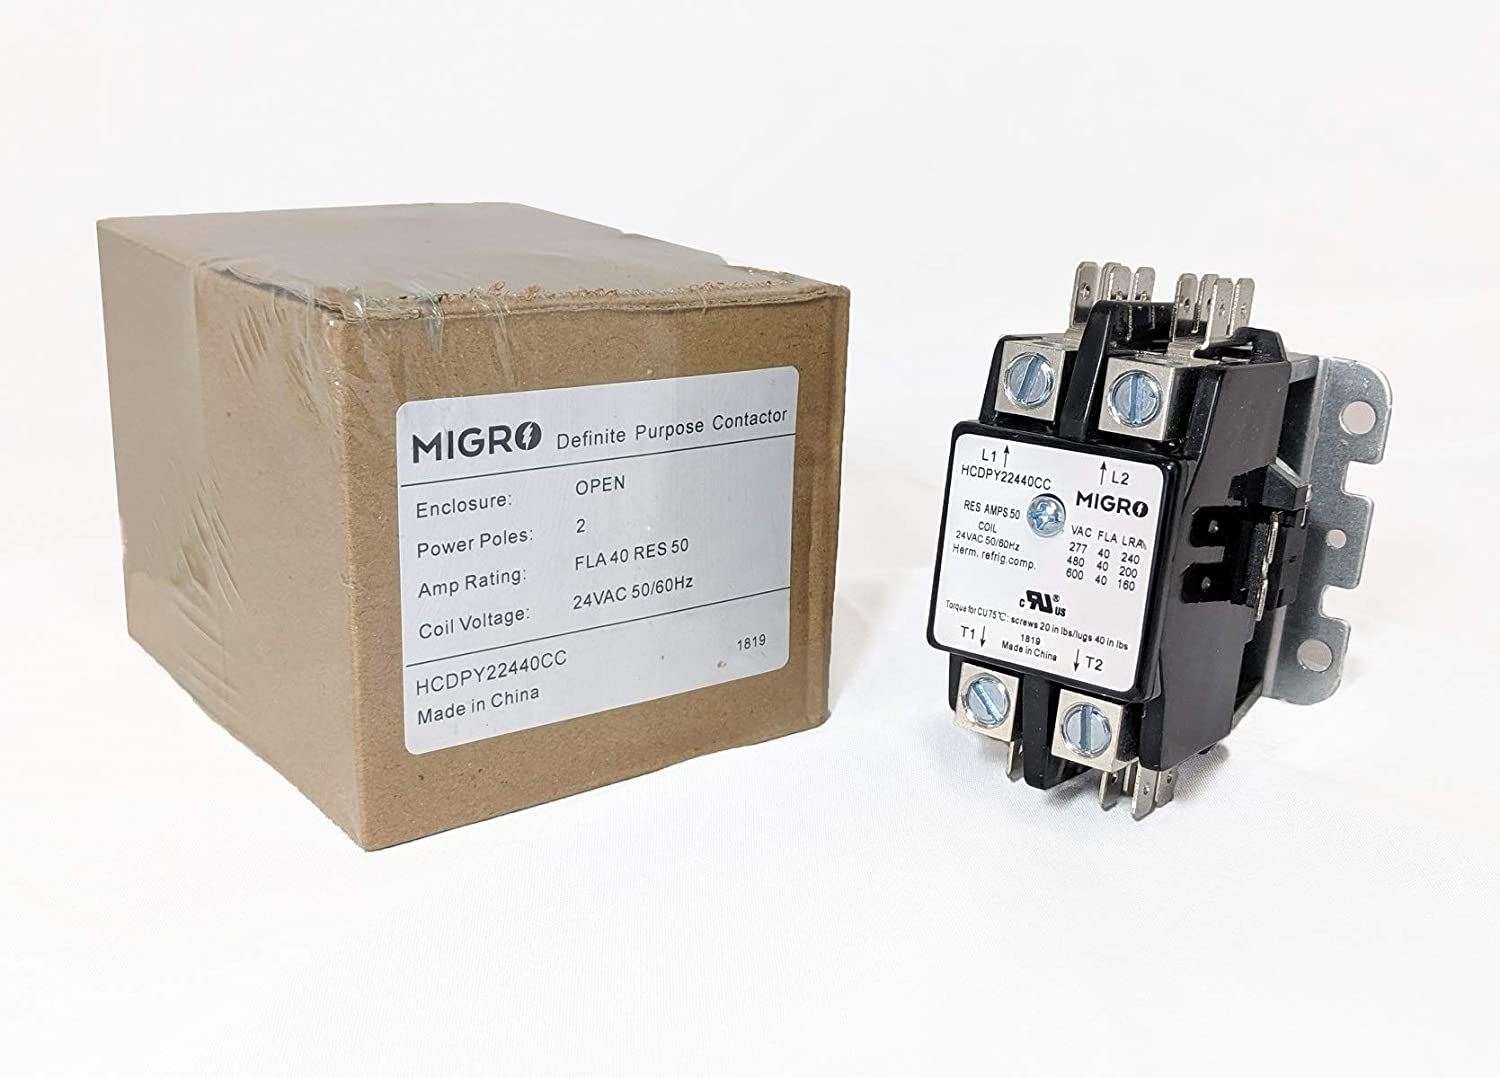 Migro 2 Pole 40 AMP Heavy Duty AC Contactor Replaces Virtually All Residential 2 Pole Models 2 Pole 120VAC Coil Voltage